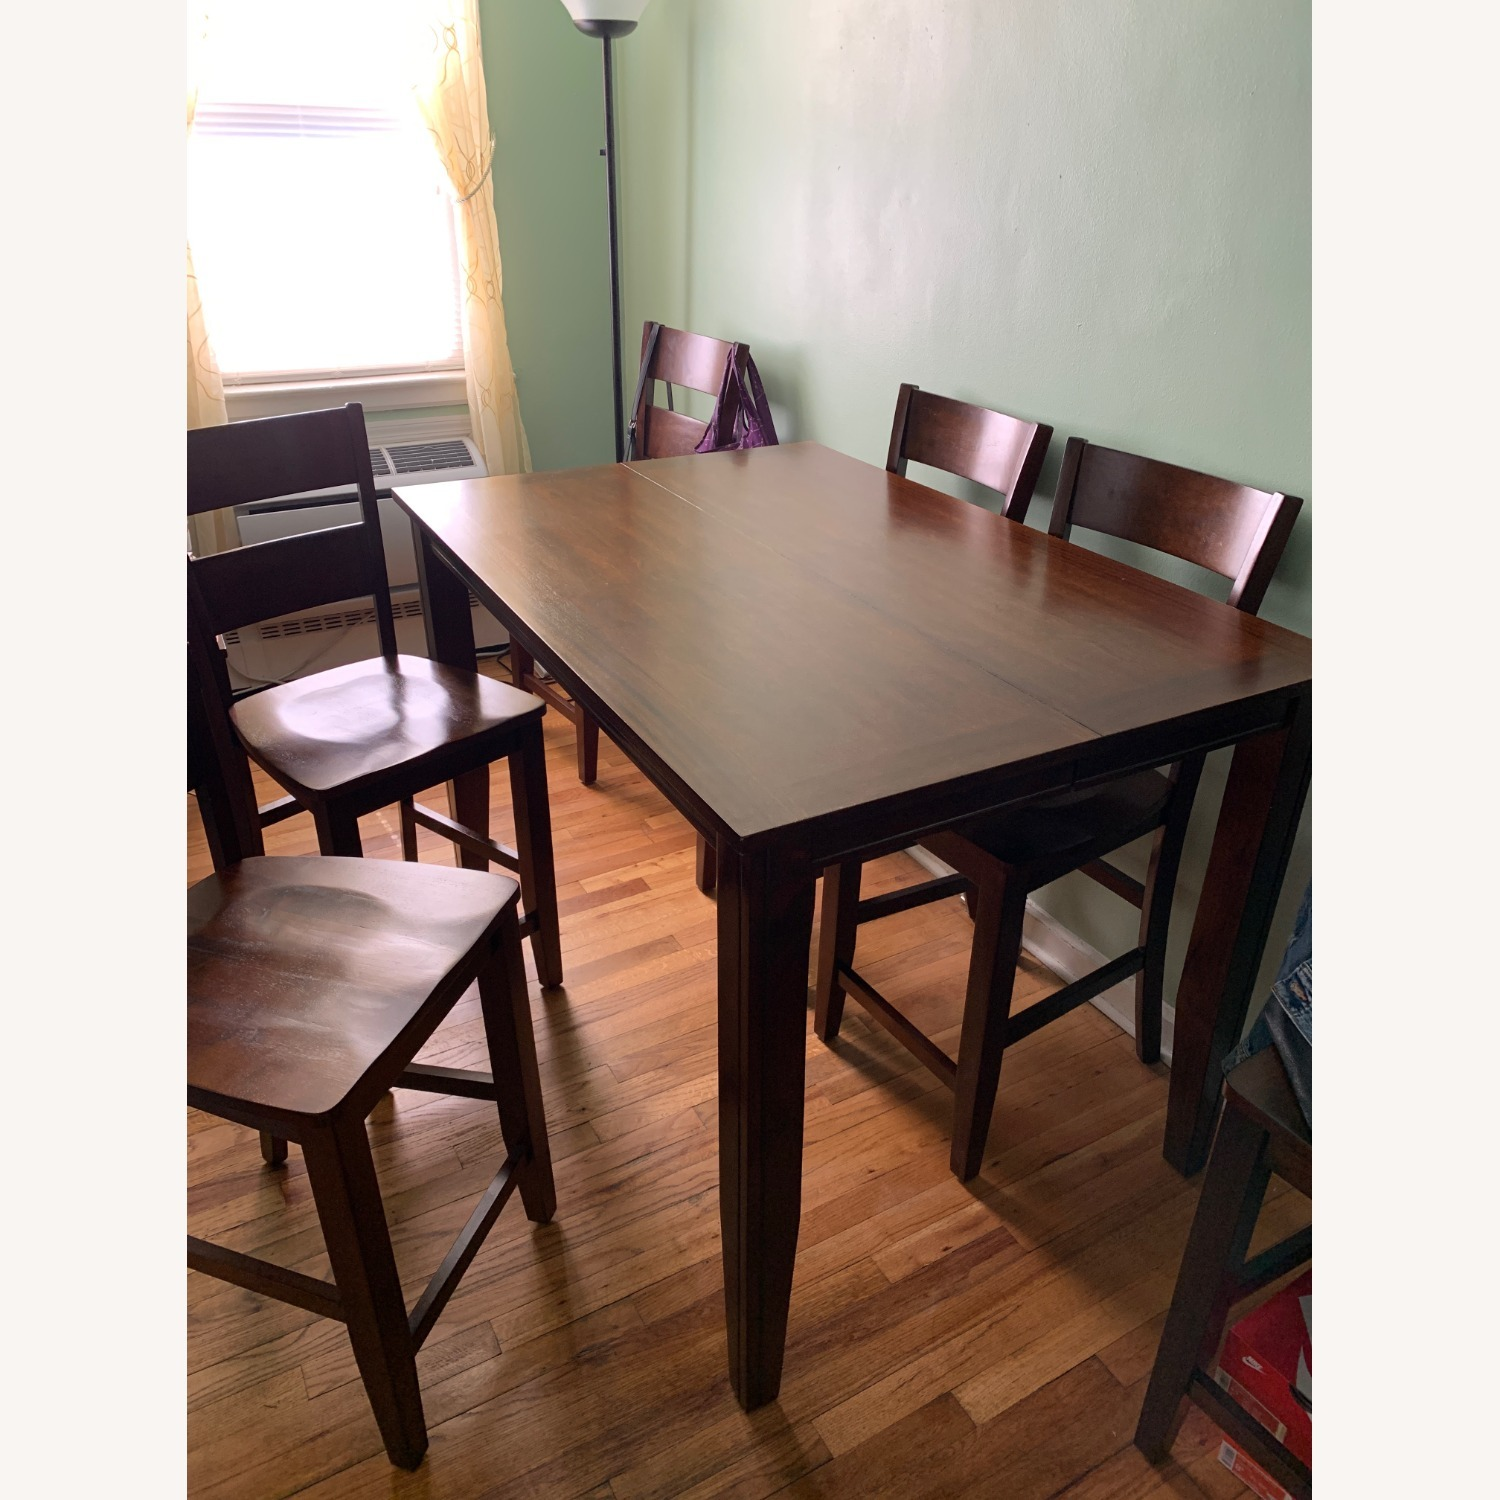 7 Piece Dining Set with Leaf - image-1